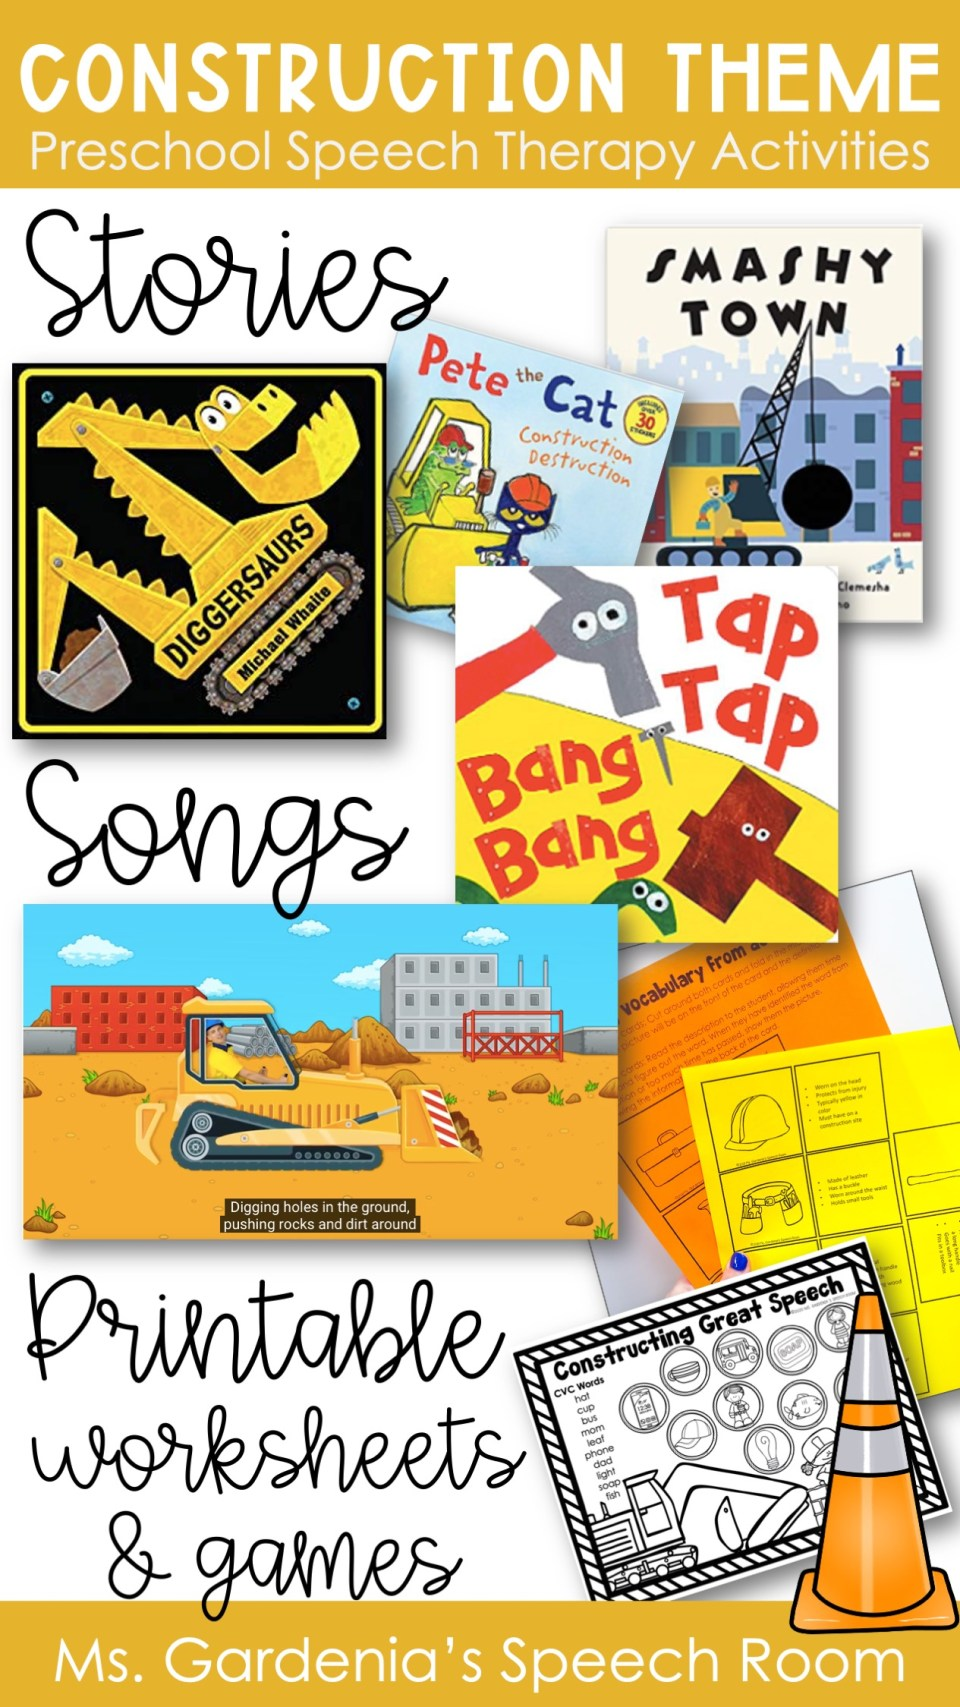 construction-theme-for-preschoolers including construction-theme-songs and construction-theme-coloring-pages